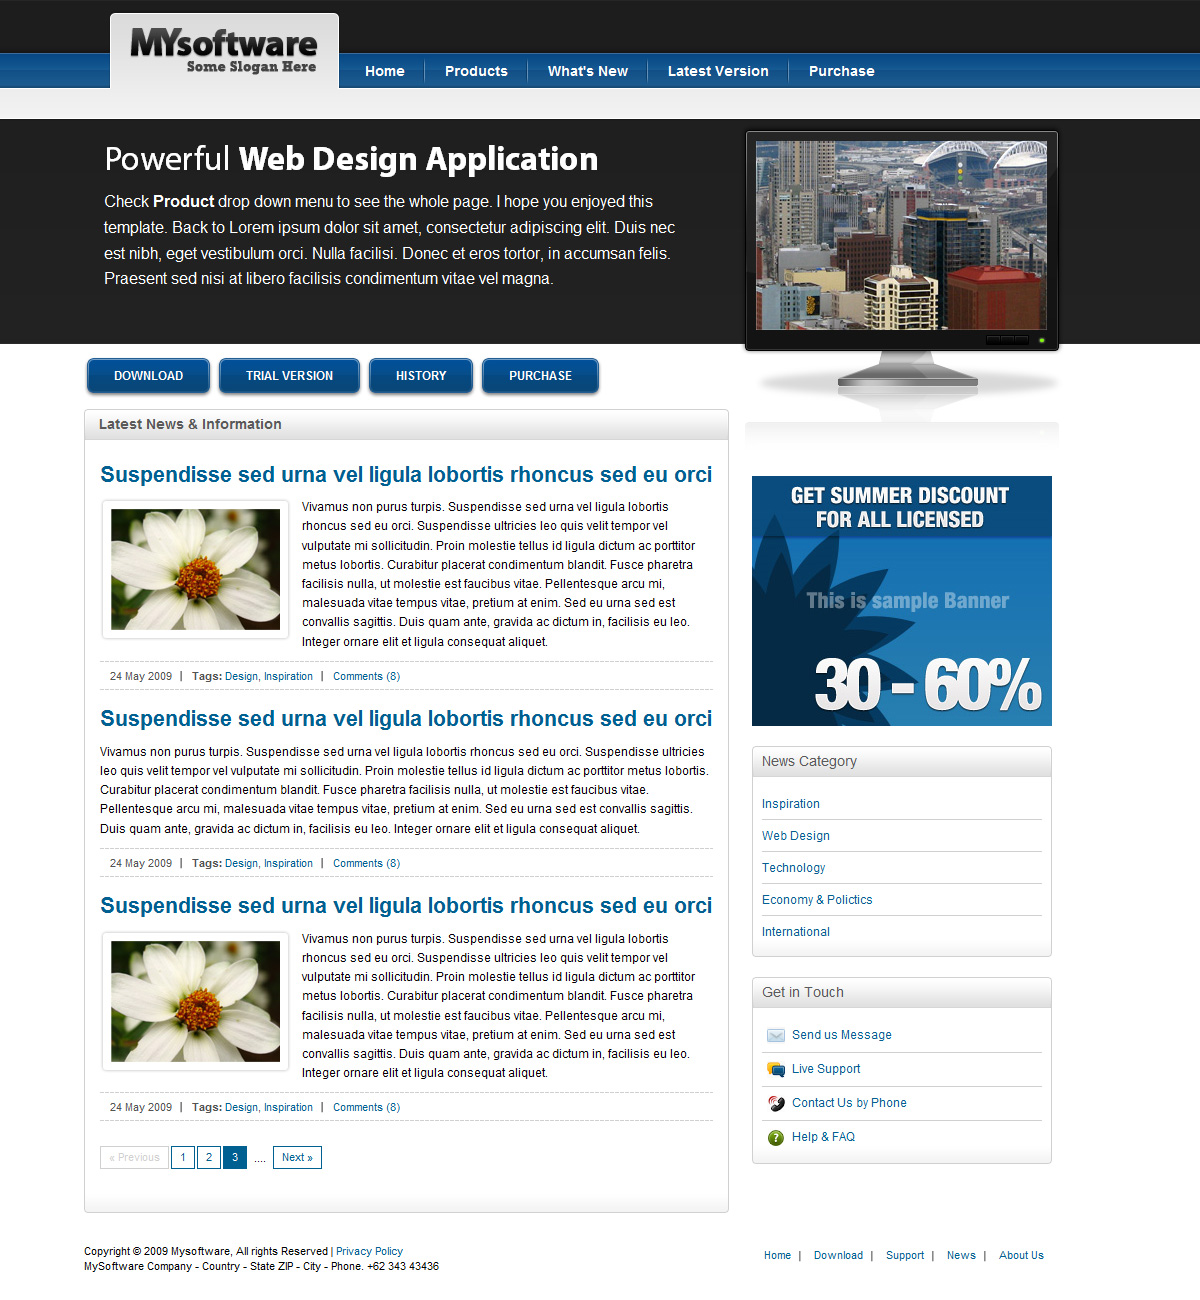 Clean Blue & Black Mac Style Software Template - Clean Blue & Black Mac Style Software Template - News Page